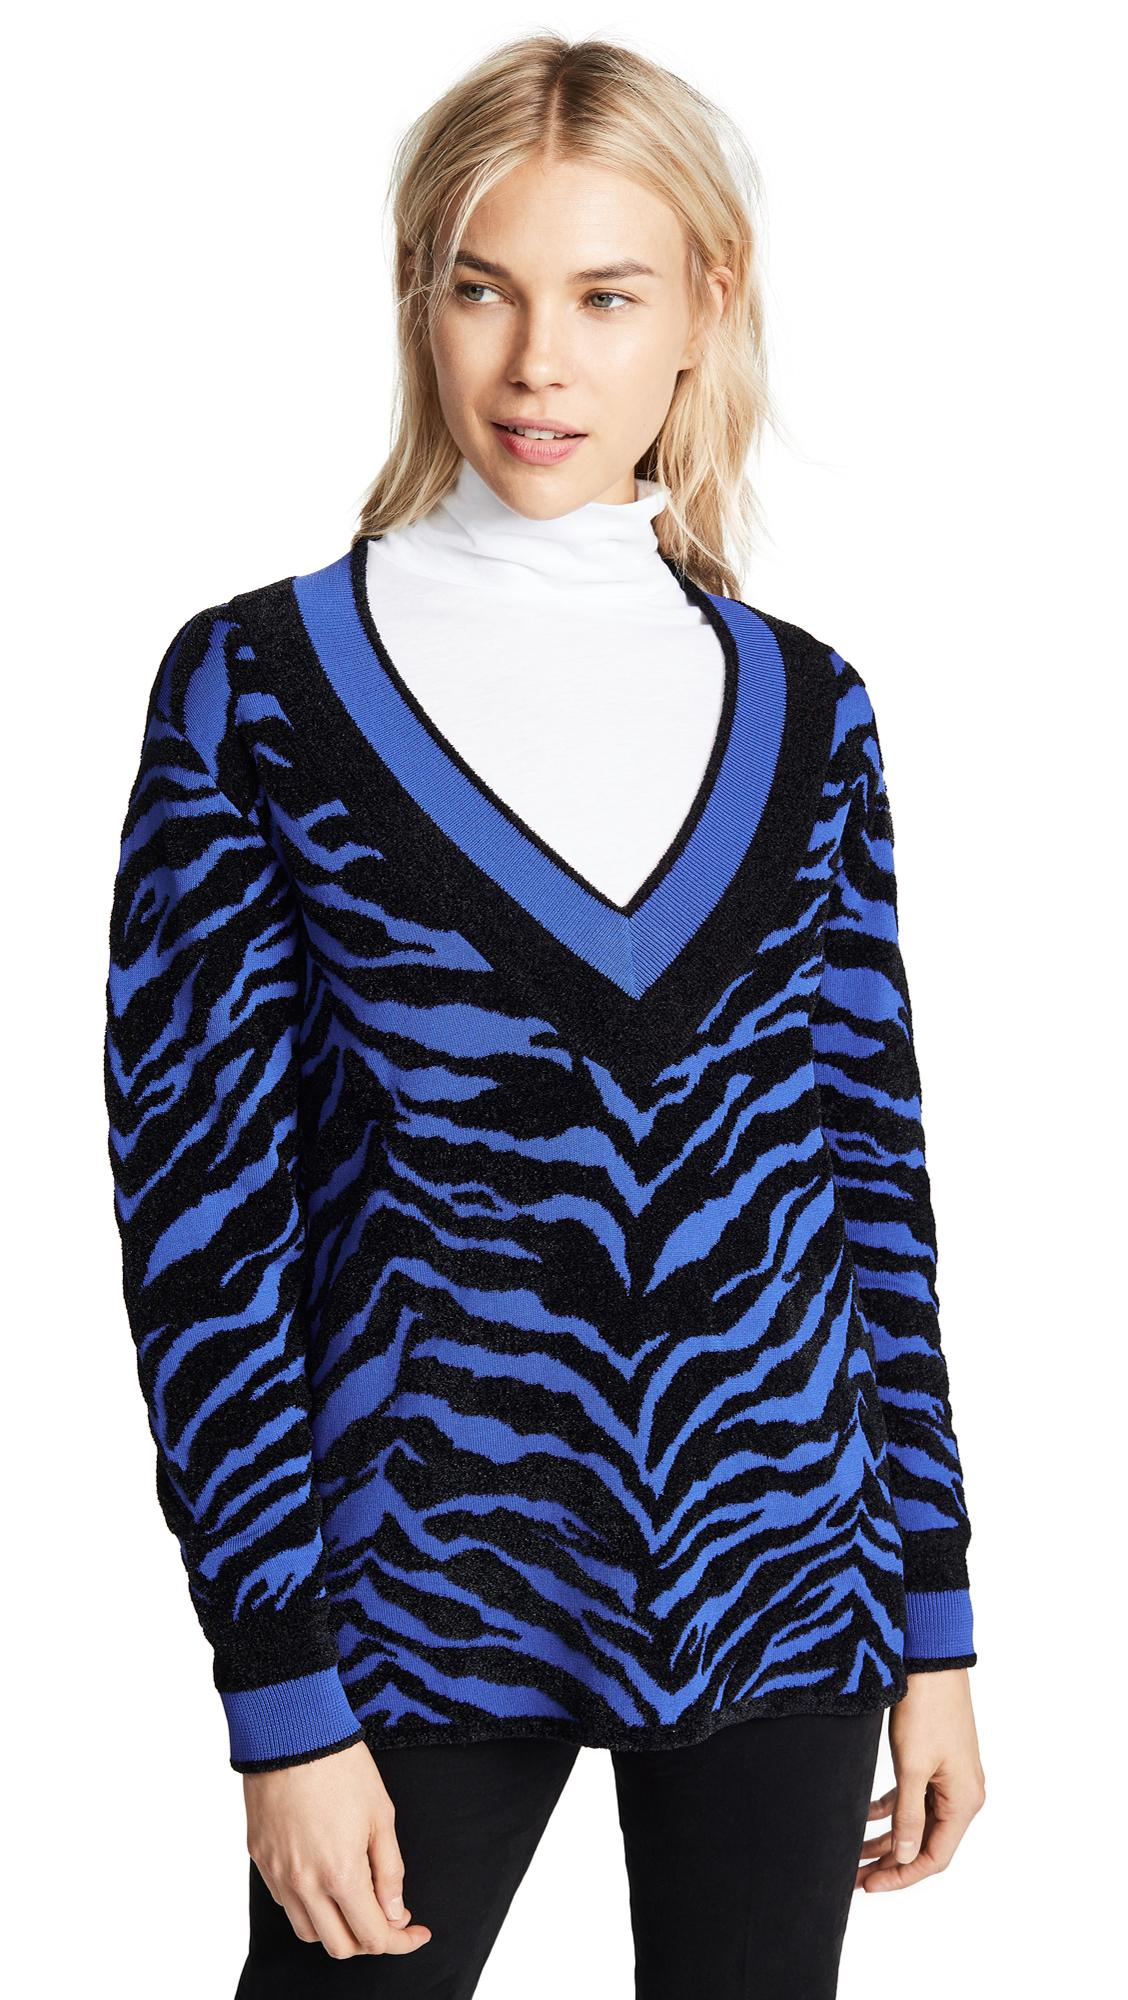 5a17ec050583a1 Adam Selman Deep V Sweater In Royal Black